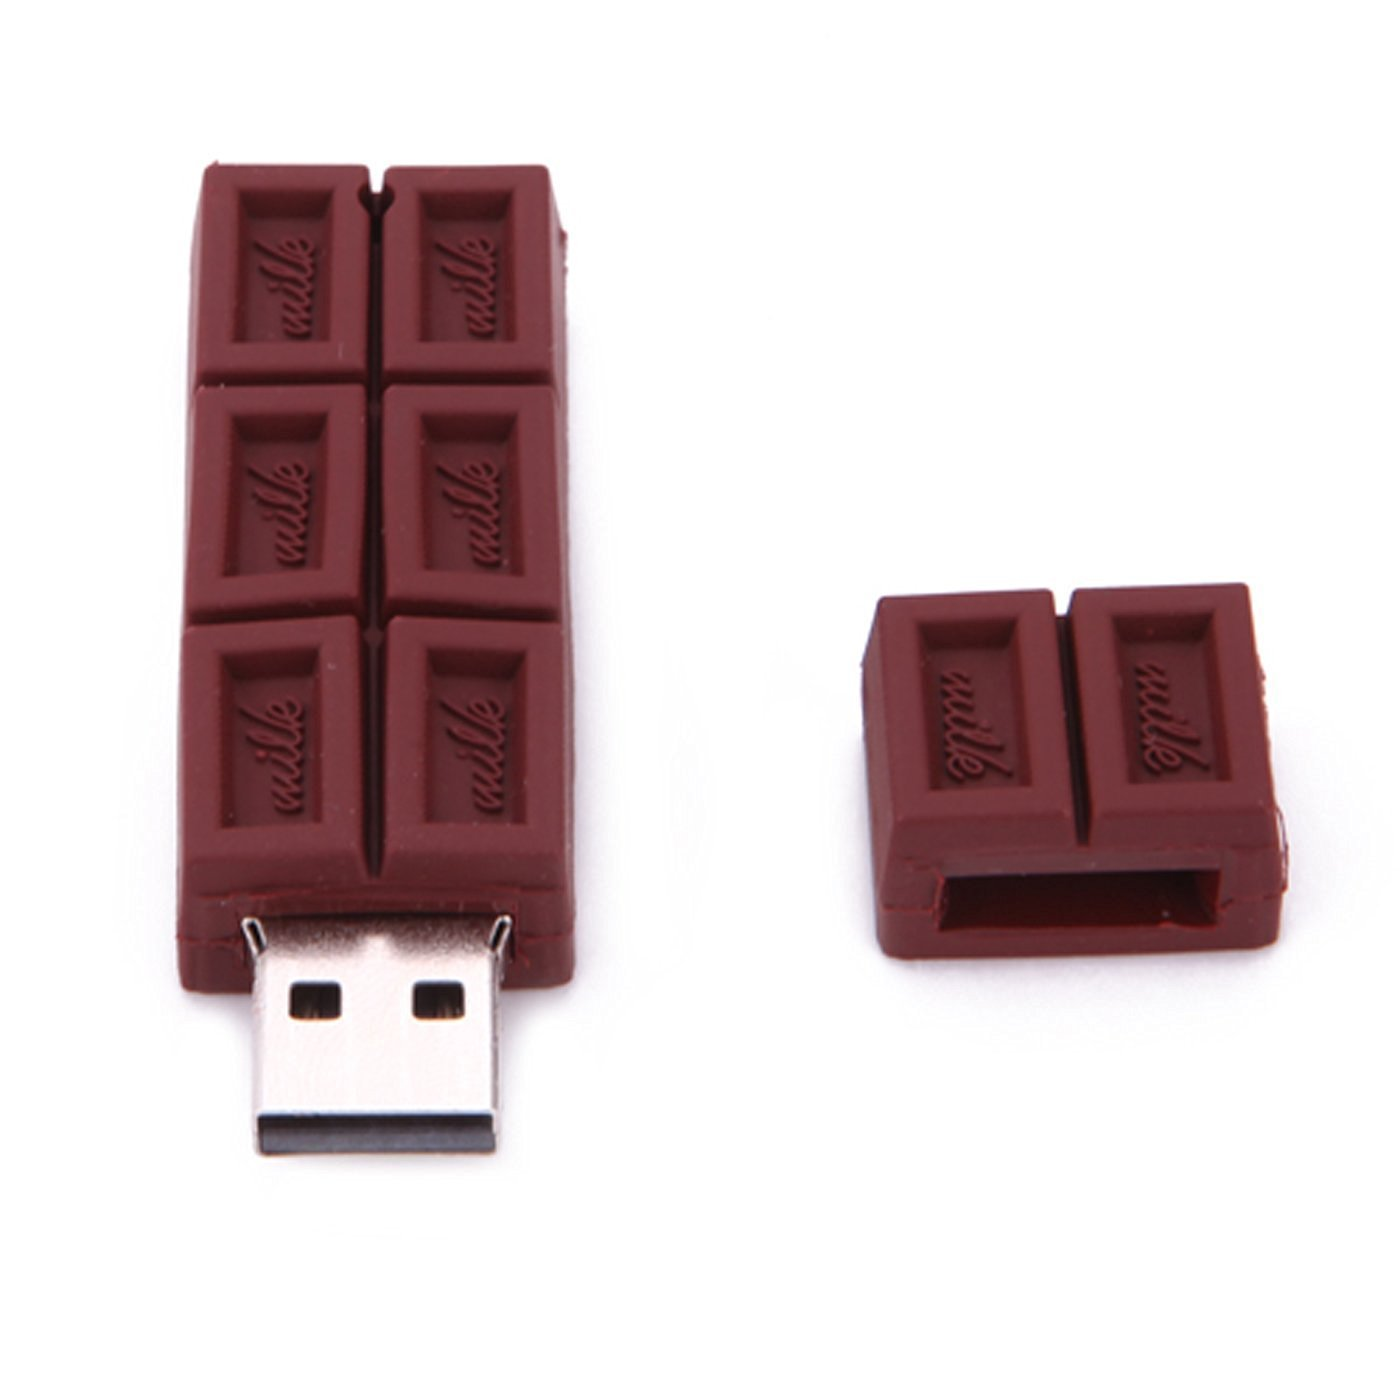 16gb chocolate bar shaped novelty usb flash drives cool memory sticks. Black Bedroom Furniture Sets. Home Design Ideas